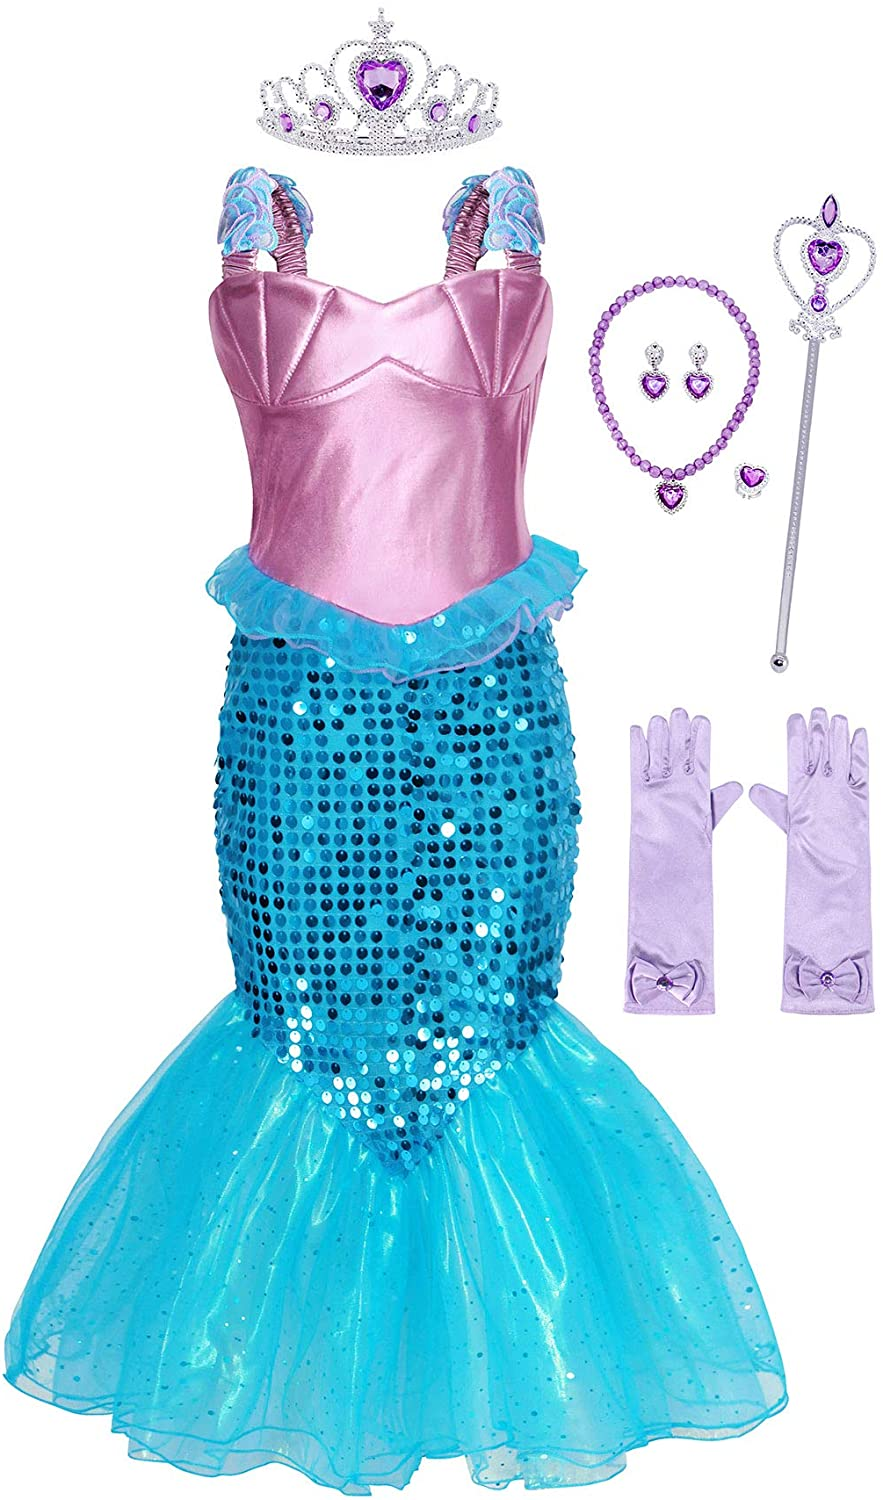 AmzBarley Princess Mermaid Outfits for Girls Sequins Outfits Birthday Party Cosplay Role Play Dress Up with Accessories